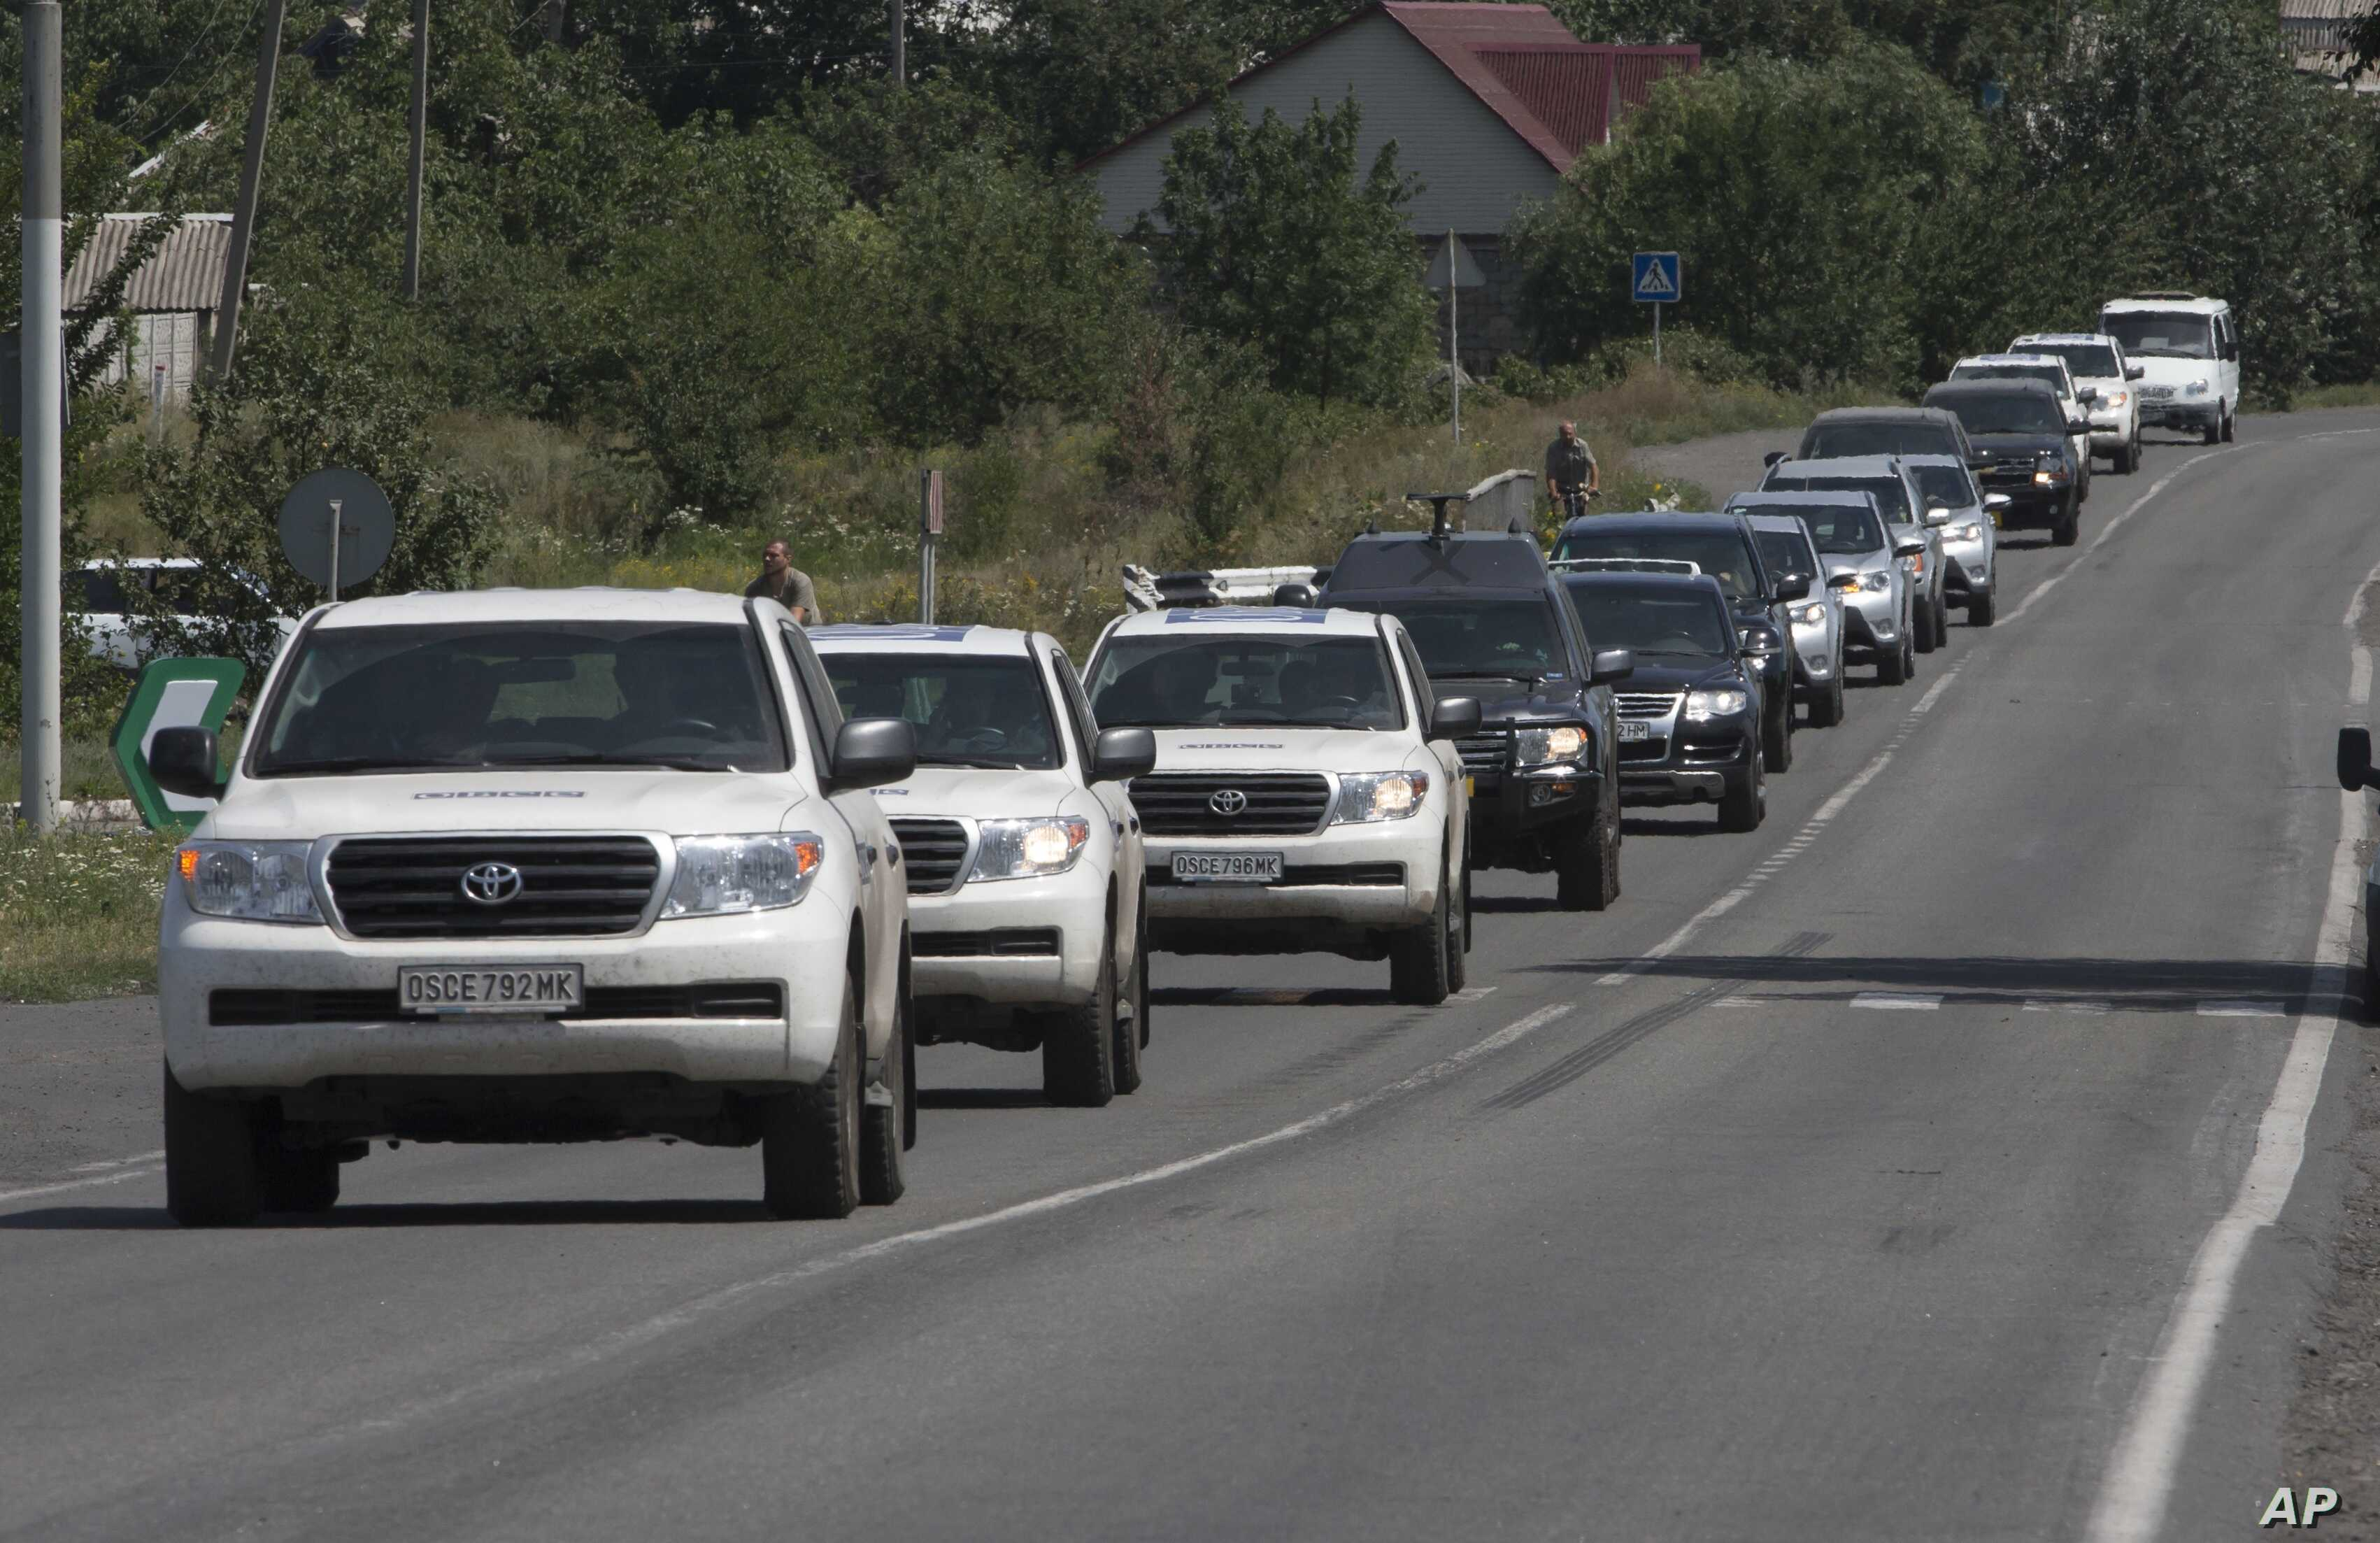 A convoy of International forensic experts, Dutch and Australian policemen and members of the OSCE mission in Ukraine approach Shakhtarsk, Donetsk region, eastern Ukraine, July 28, 2014.